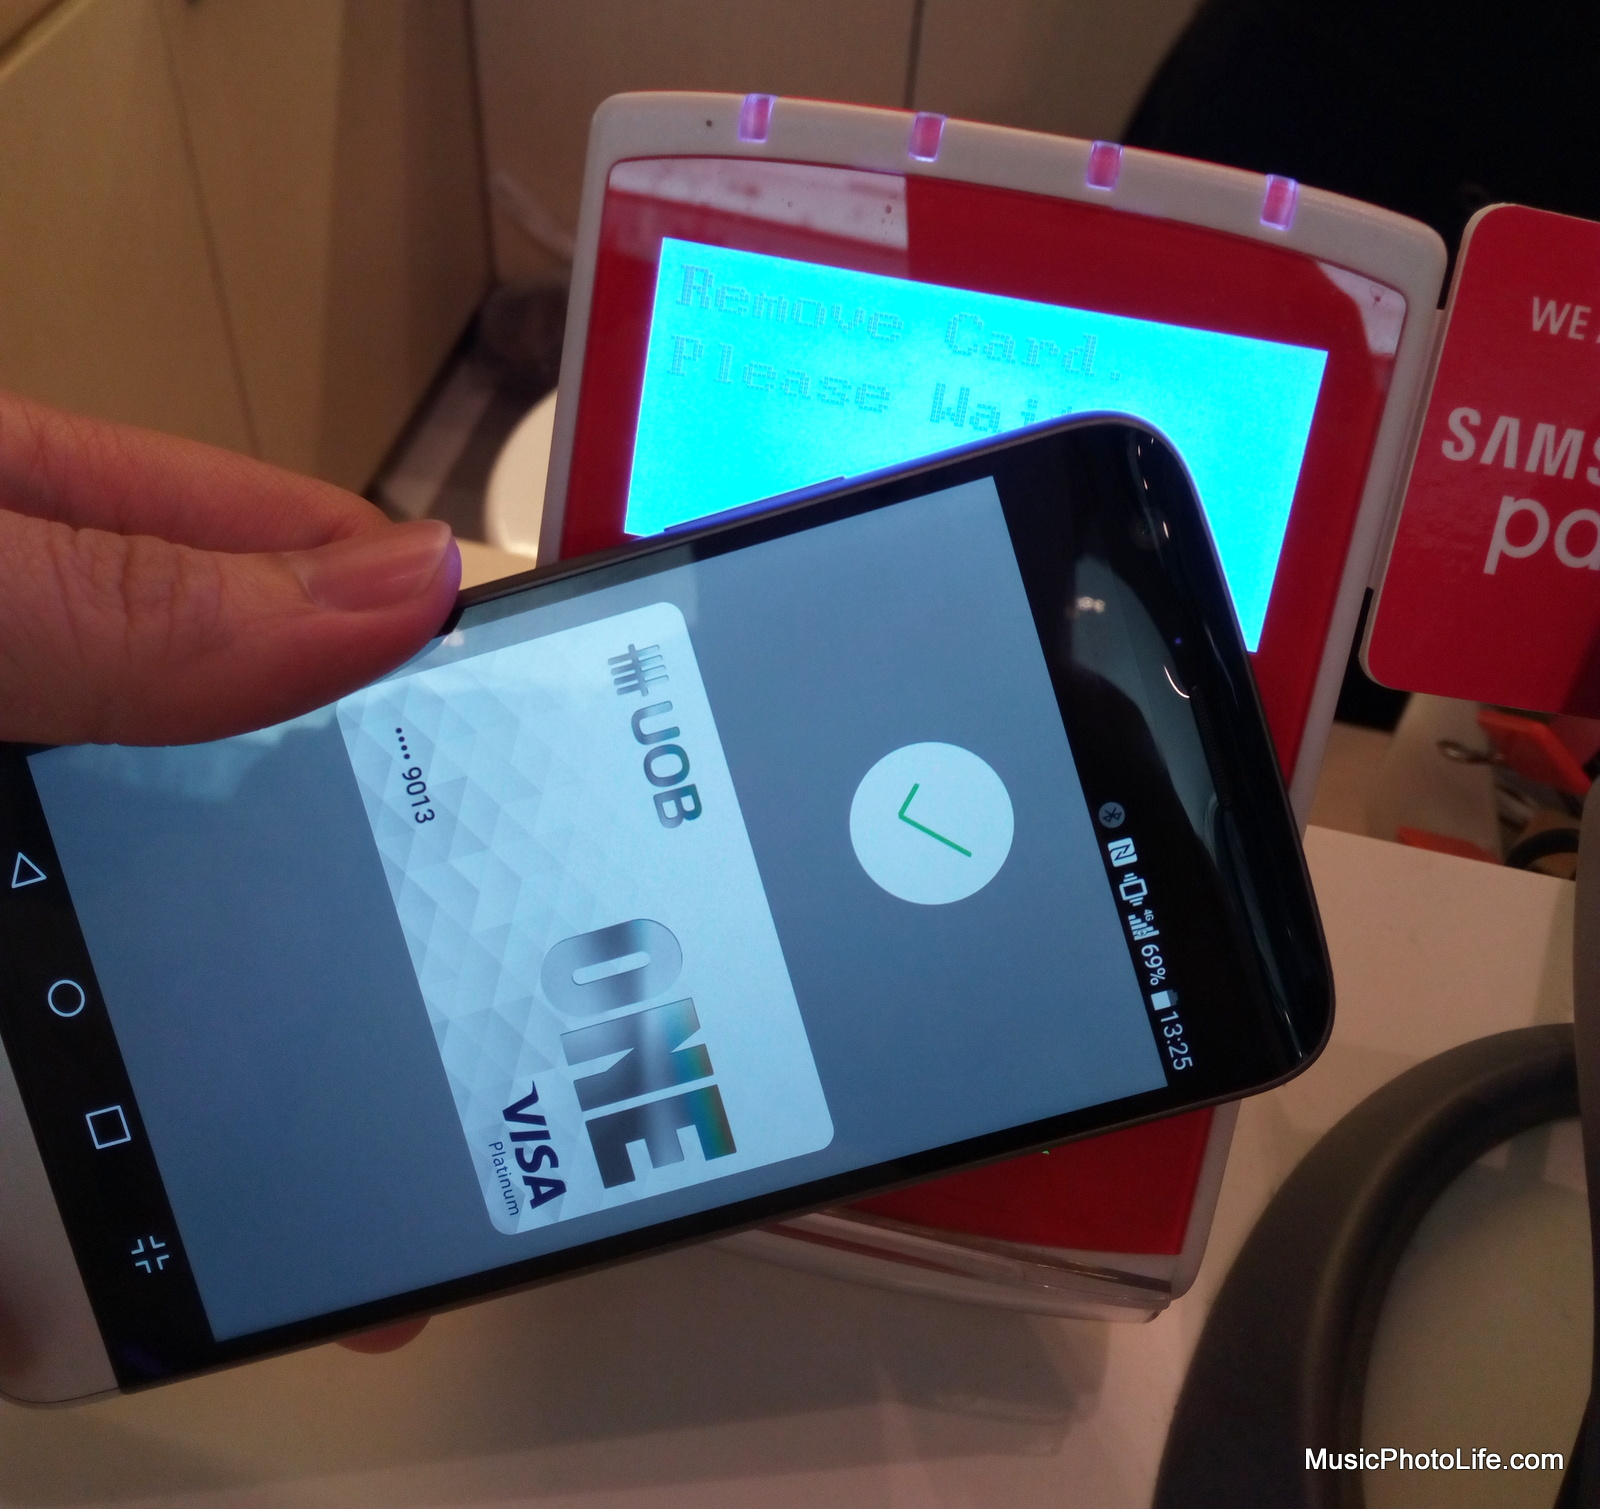 Paying with Android Pay on LG G5 at the terminal